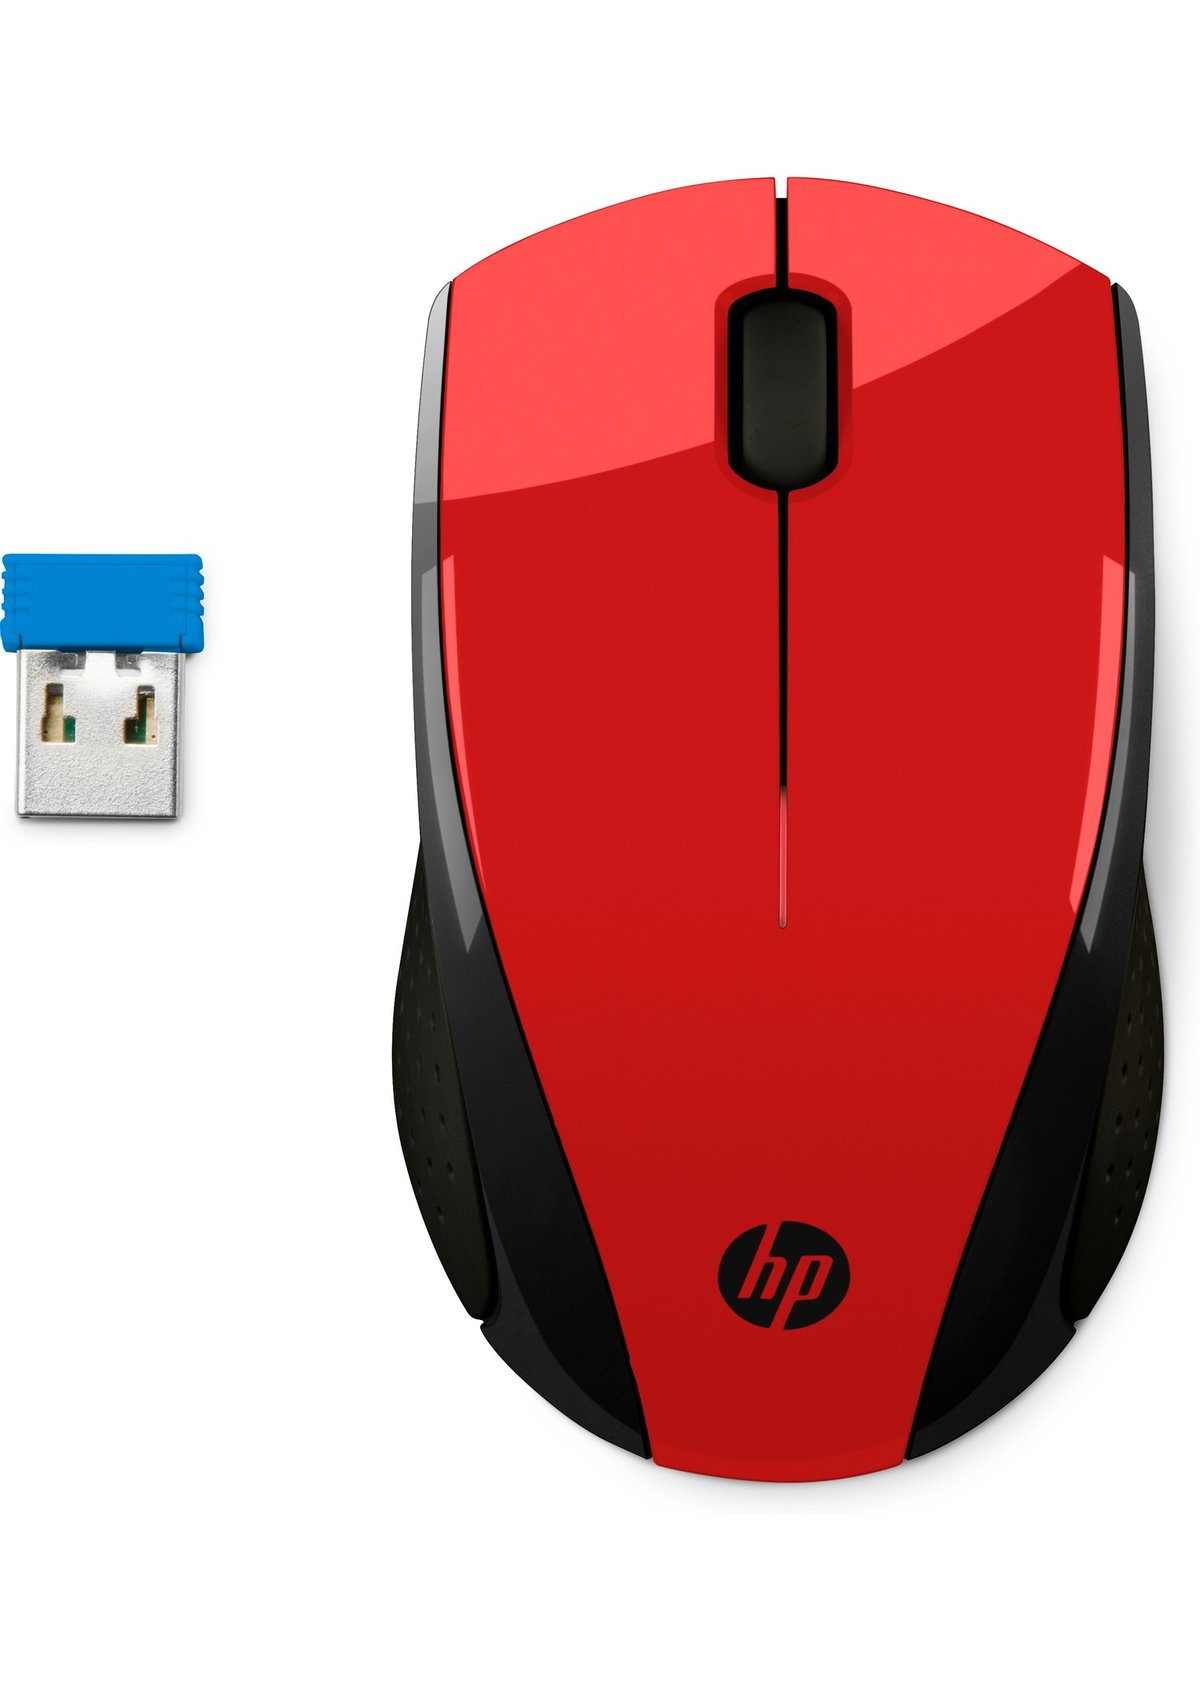 HP 2HW69AA#ABL Wireless Mouse X3000 - Optical - Red, Black - USB - Scroll  Wheel